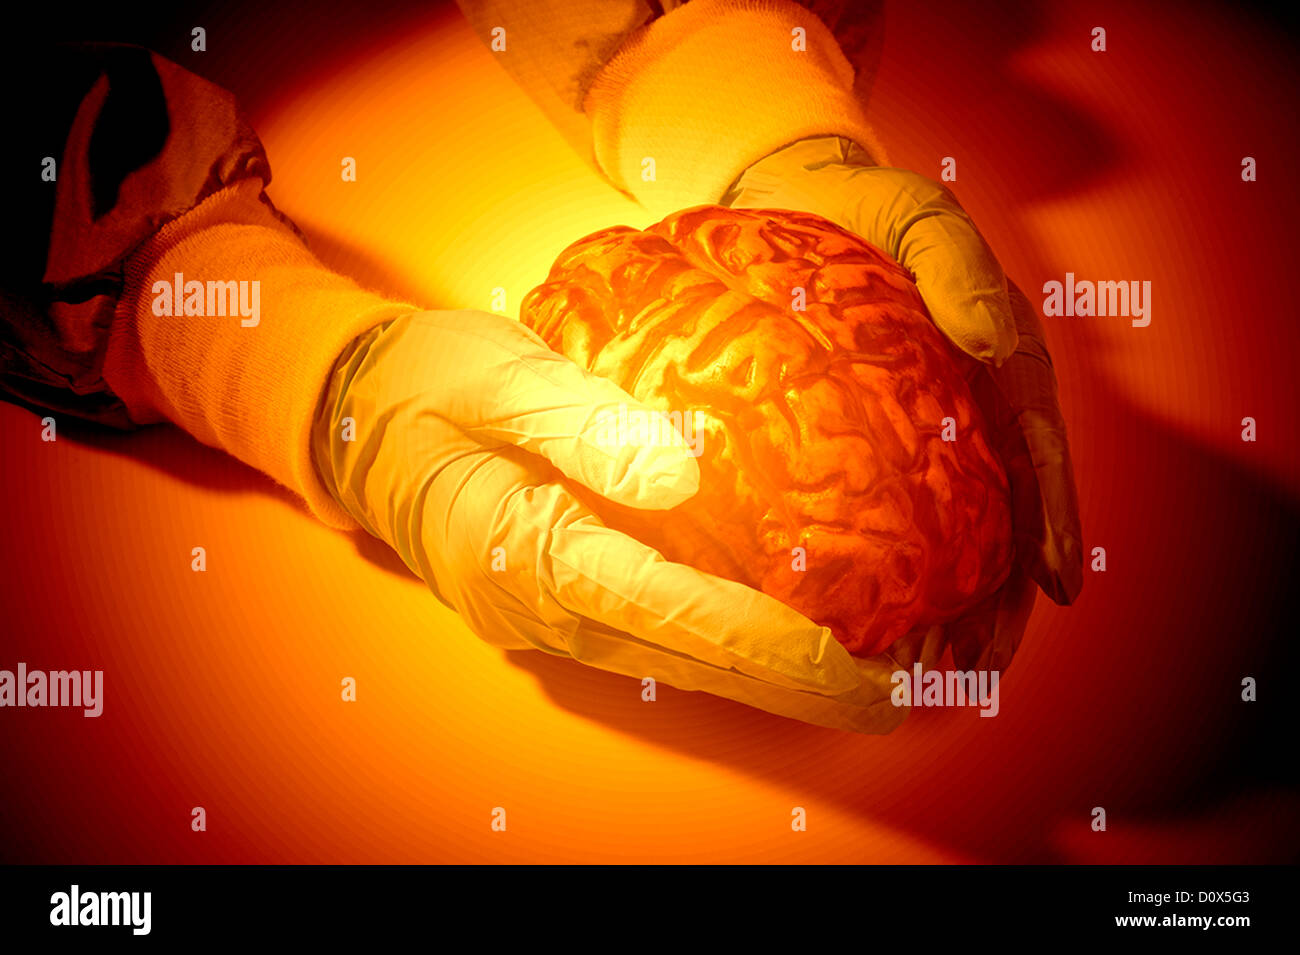 computer generated gloved hands holding human brain abstract - Stock Image